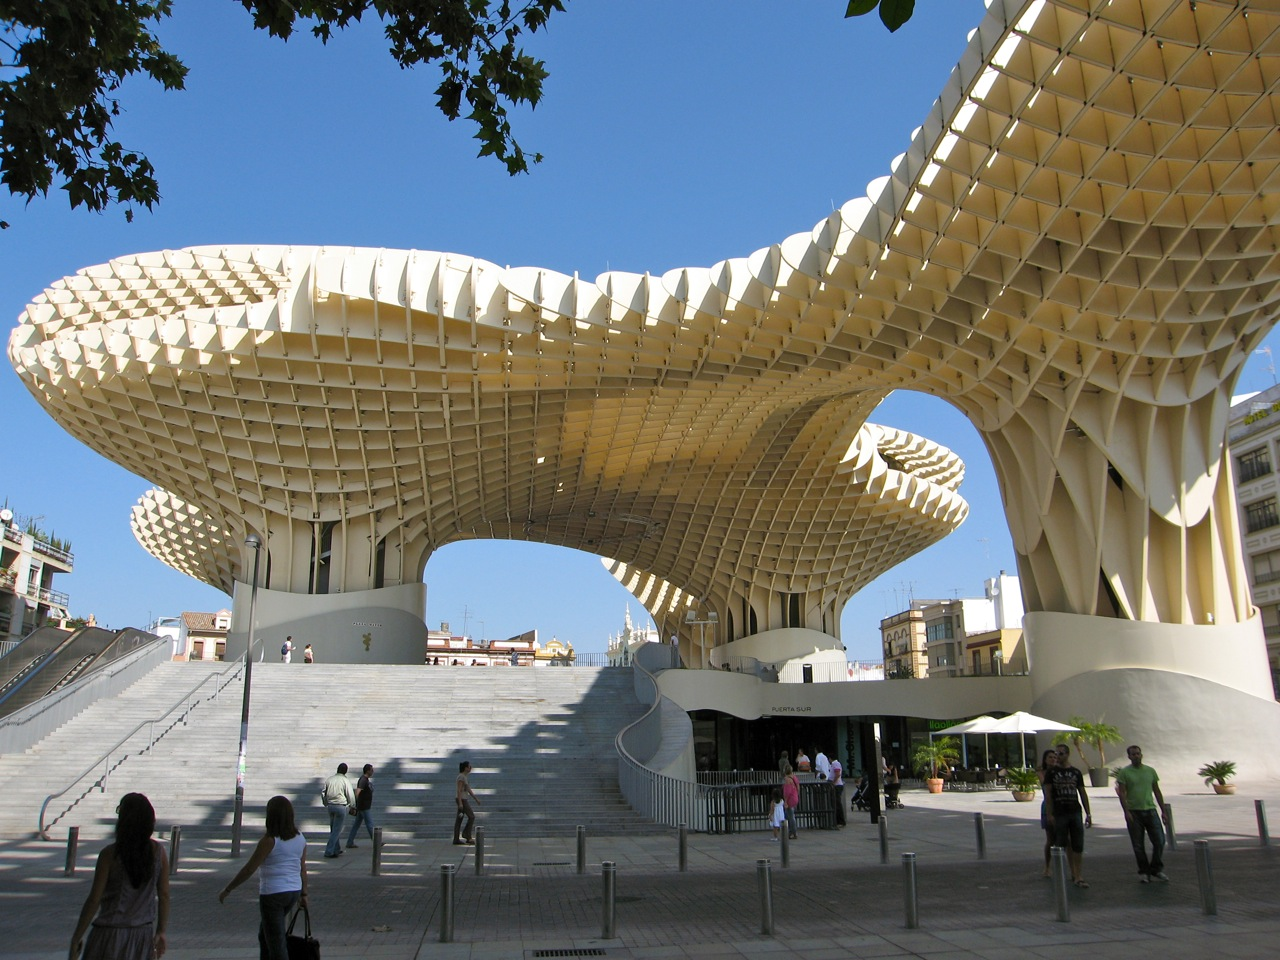 Best Bathroom Mirror Experimenting In Public: Metropol Parasol, Seville, By